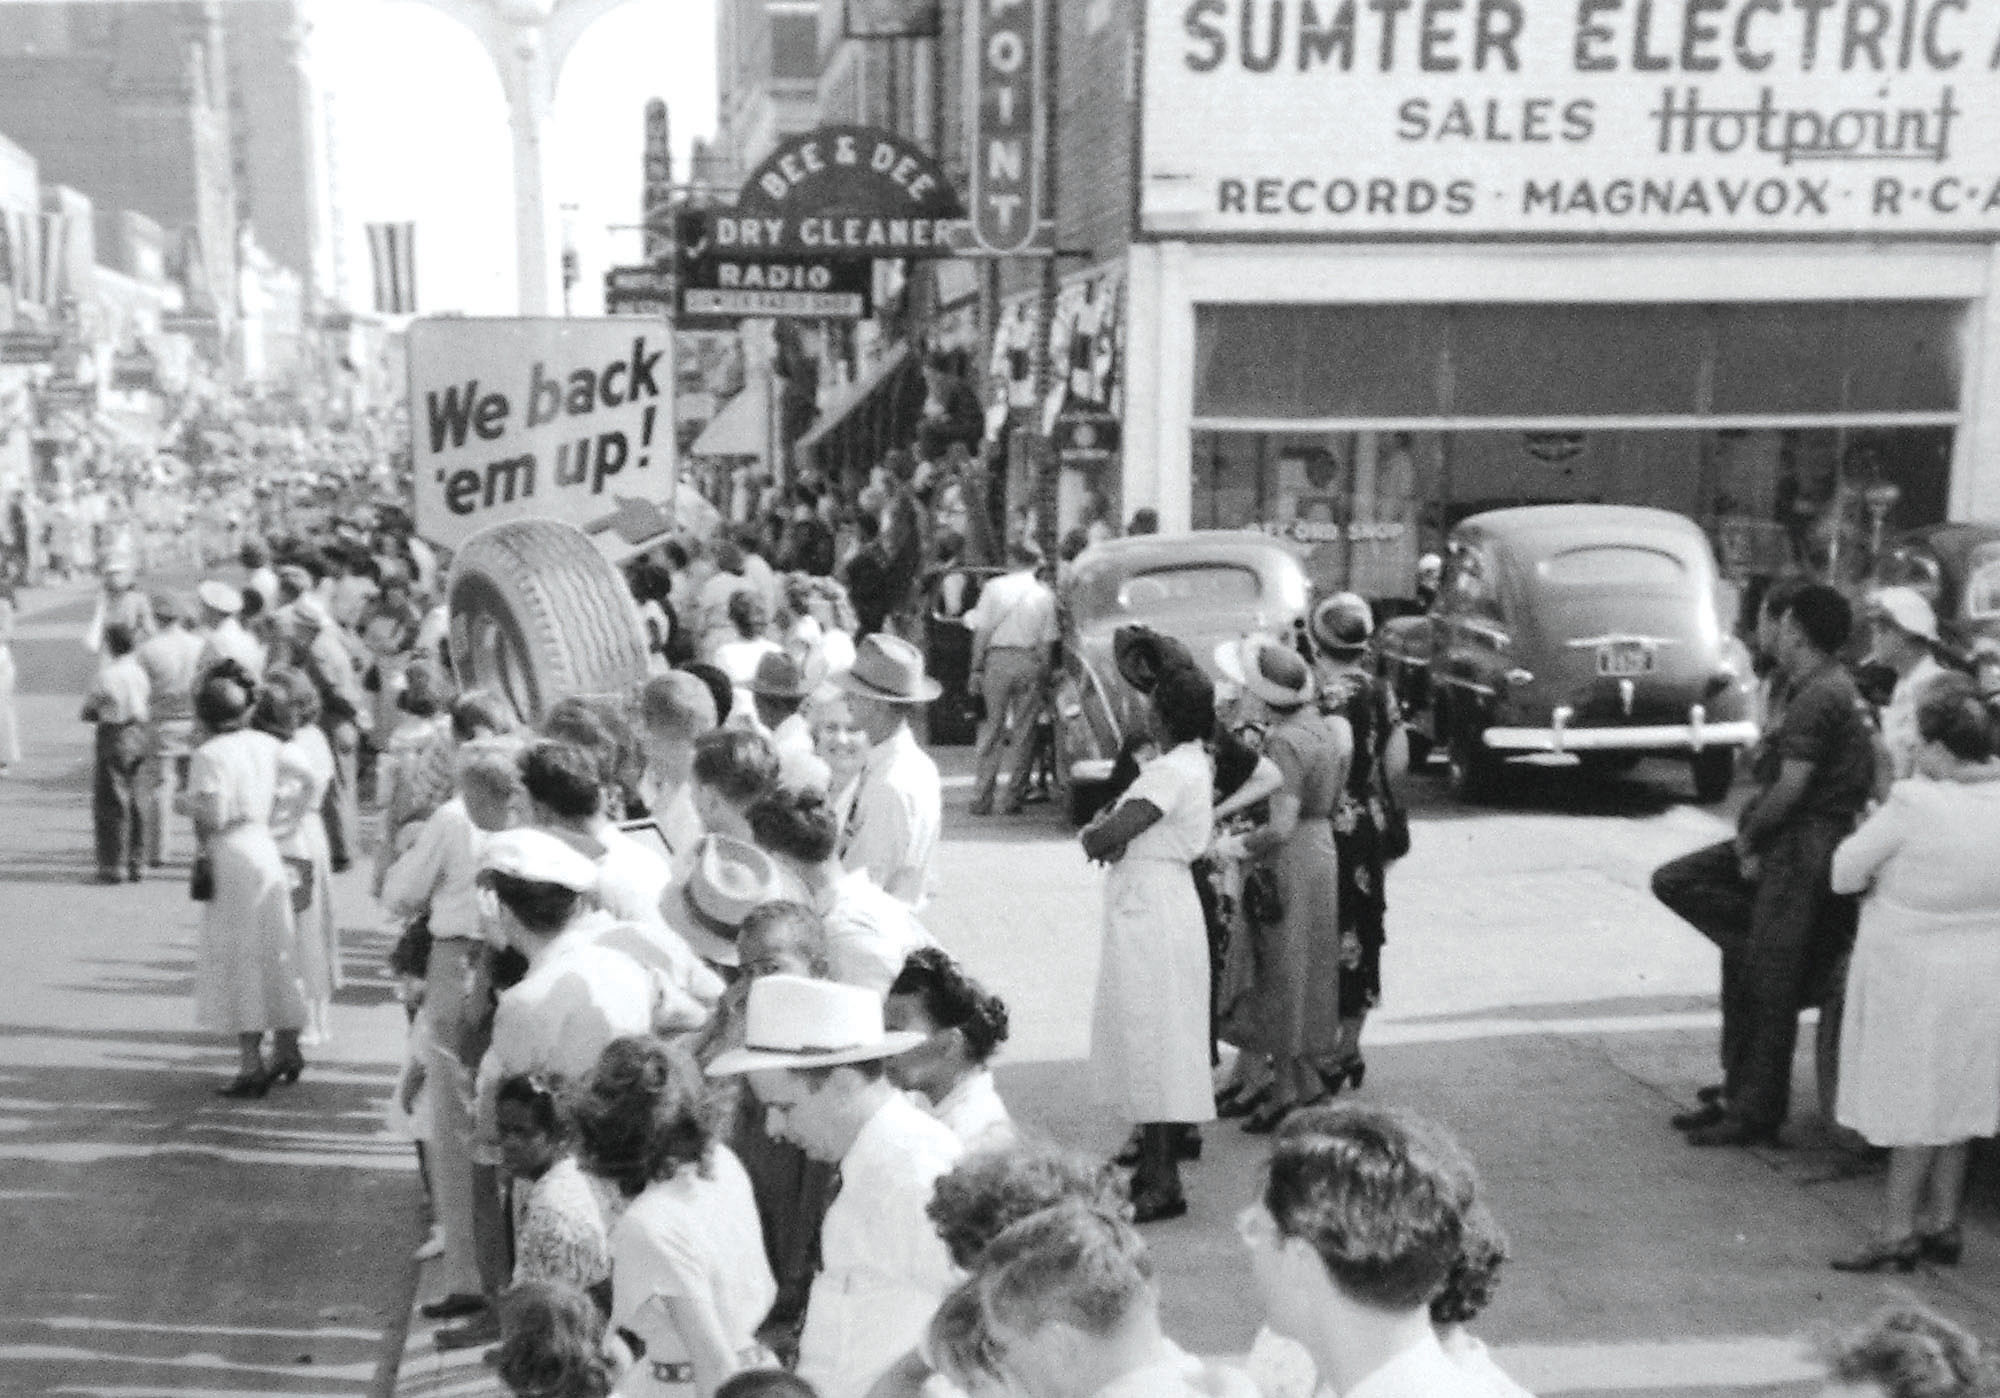 Paradegoers line Main Street outside of Sumter Electric and Appliance Co., which was eventually shortened to SEACO.